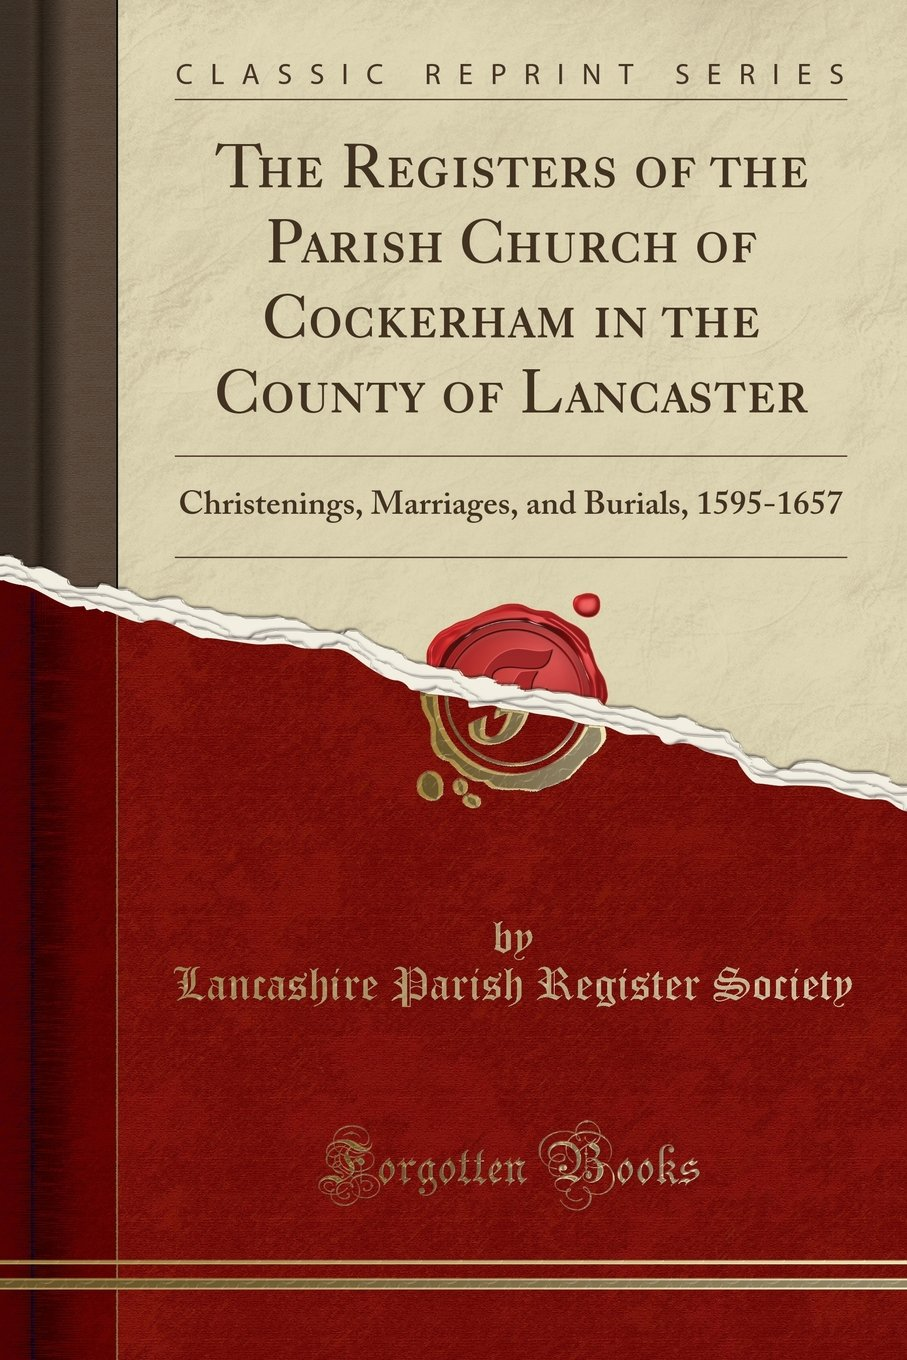 The Registers of the Parish Church of Cockerham in the County of Lancaster: Christenings, Marriages, and Burials, 1595-1657 (Classic Reprint) PDF